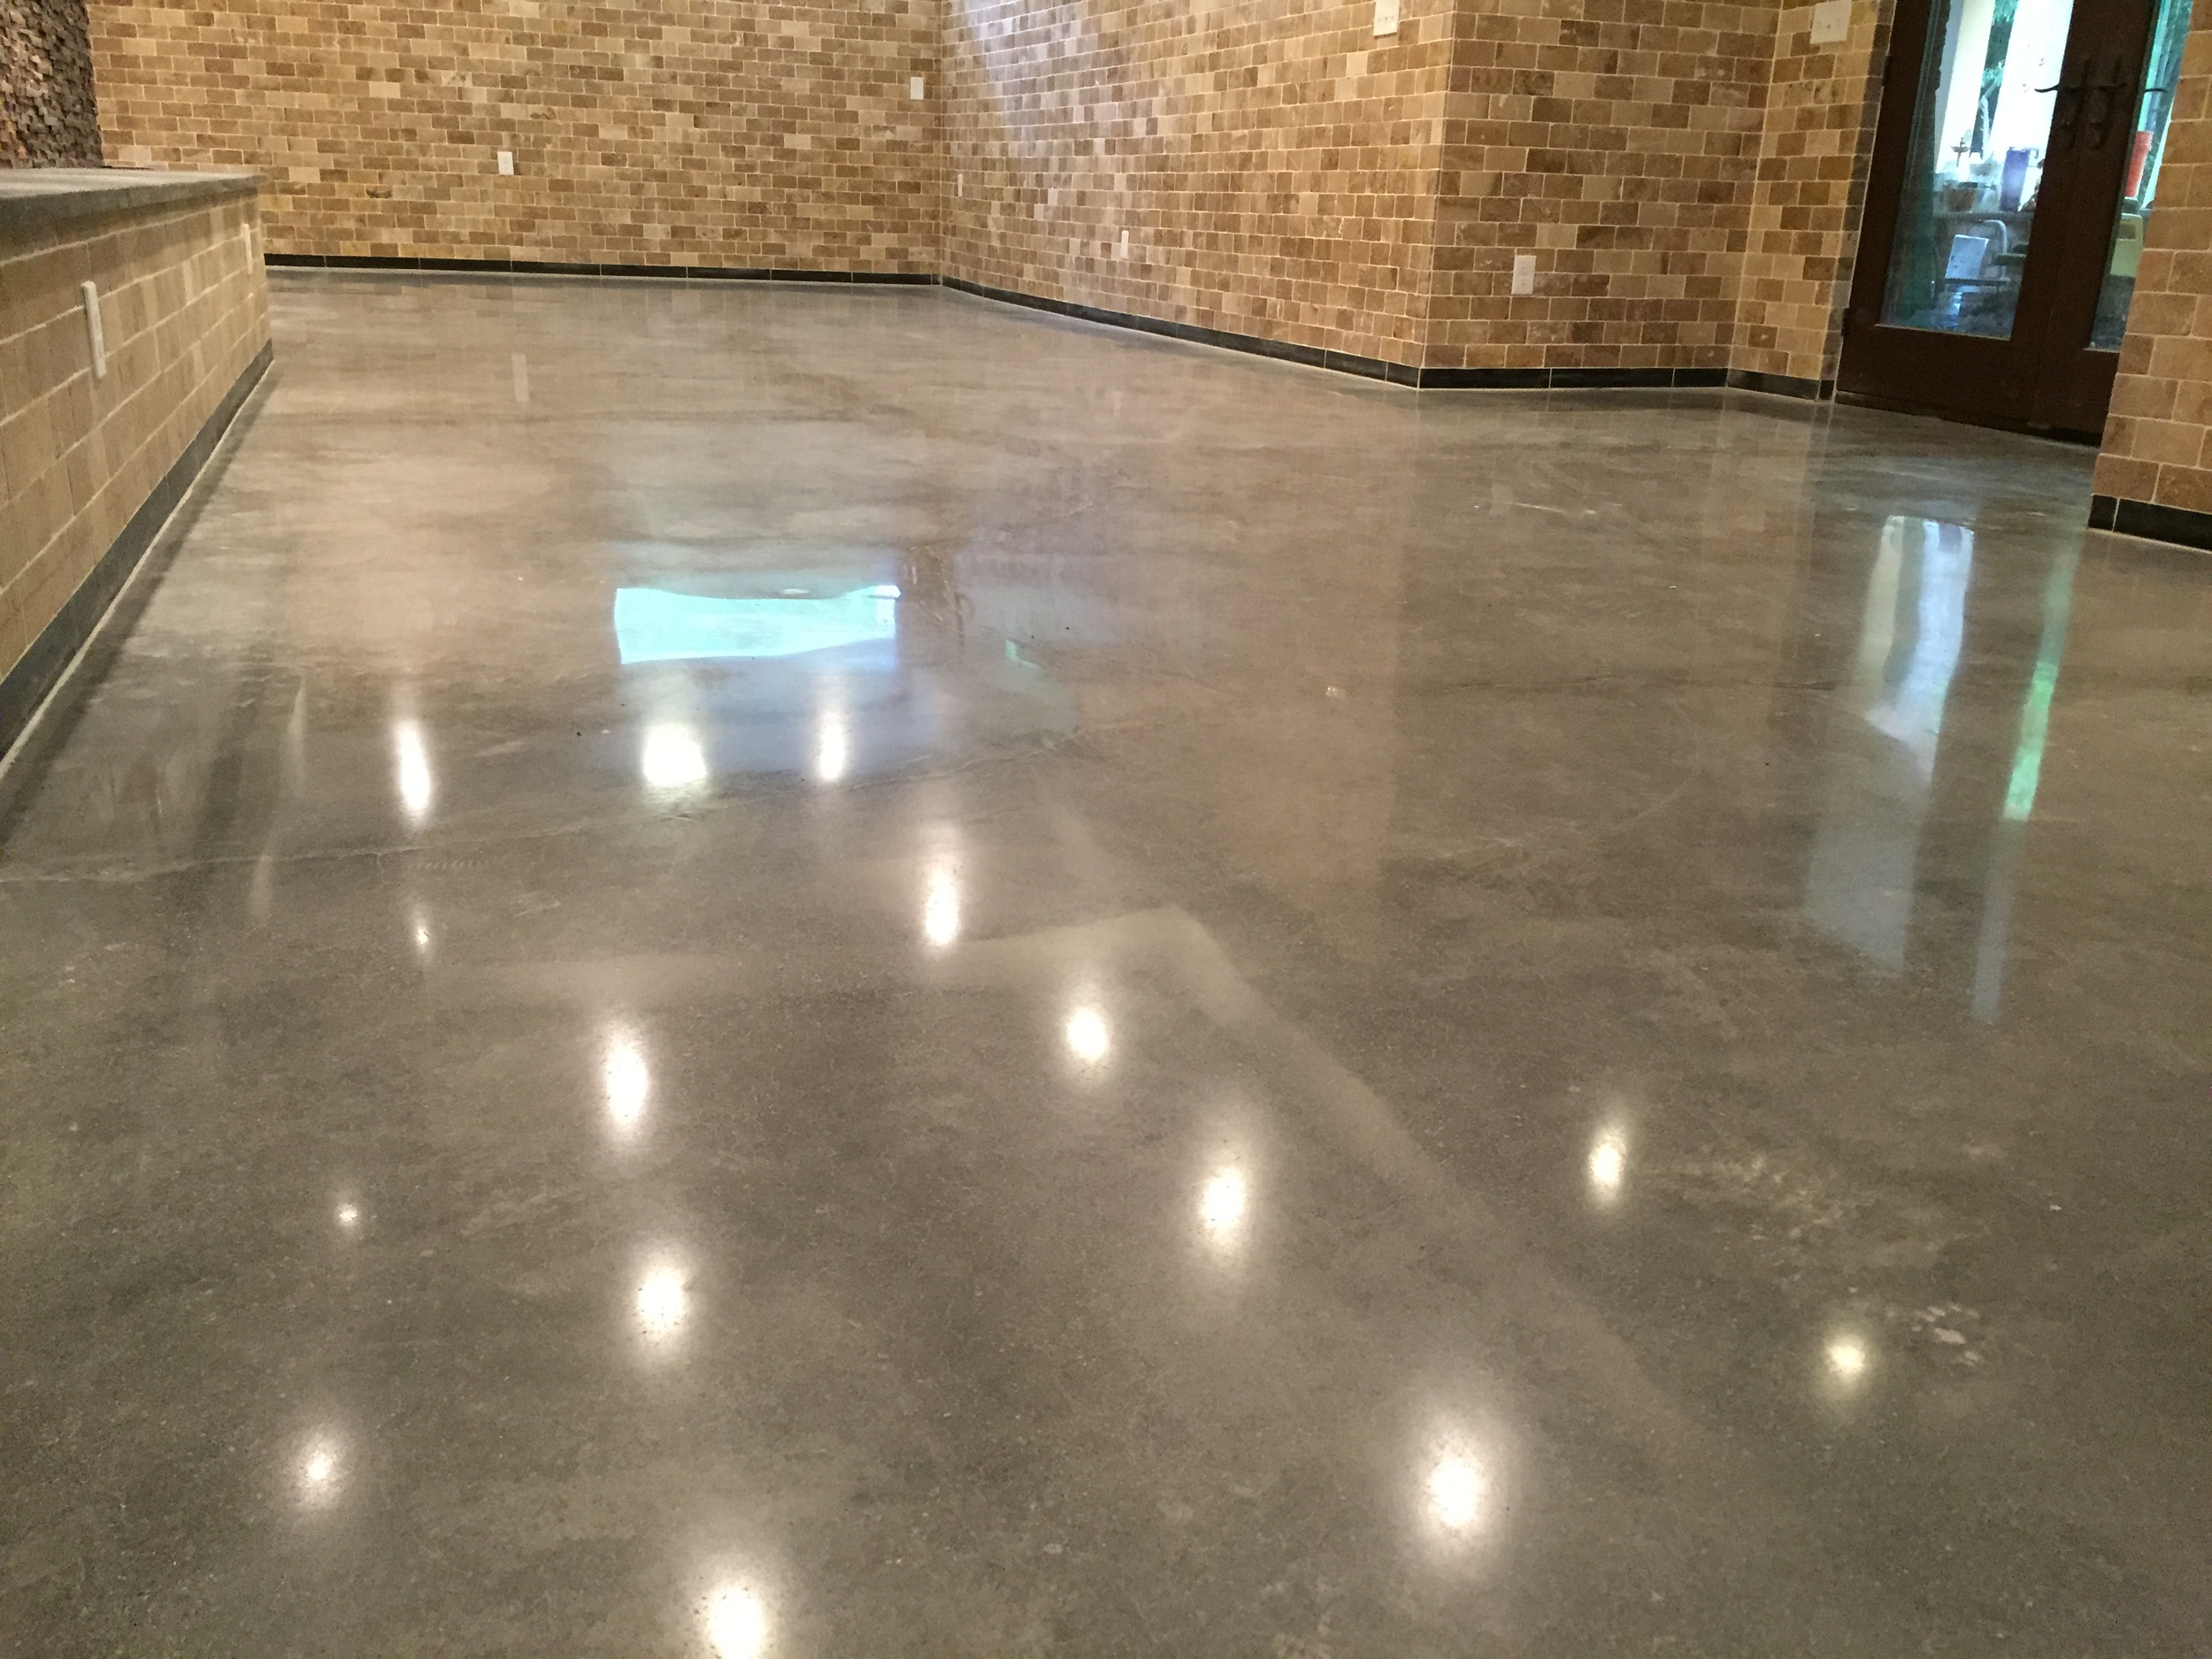 Basement with Finished Walls and Polished Concrete